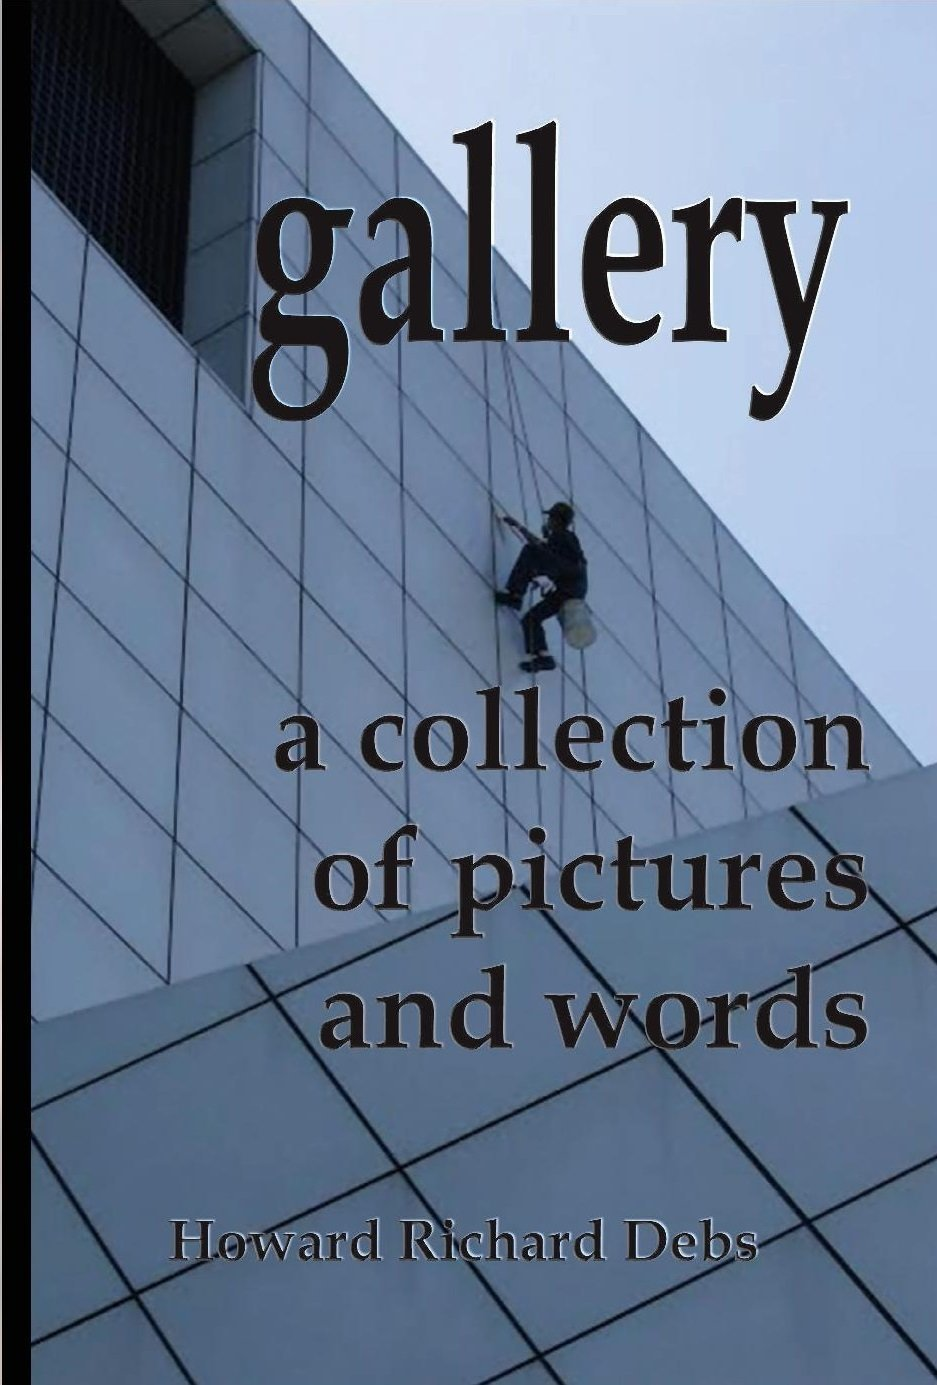 Gallery: A Collection of Pictures and Words - Book Interior Design